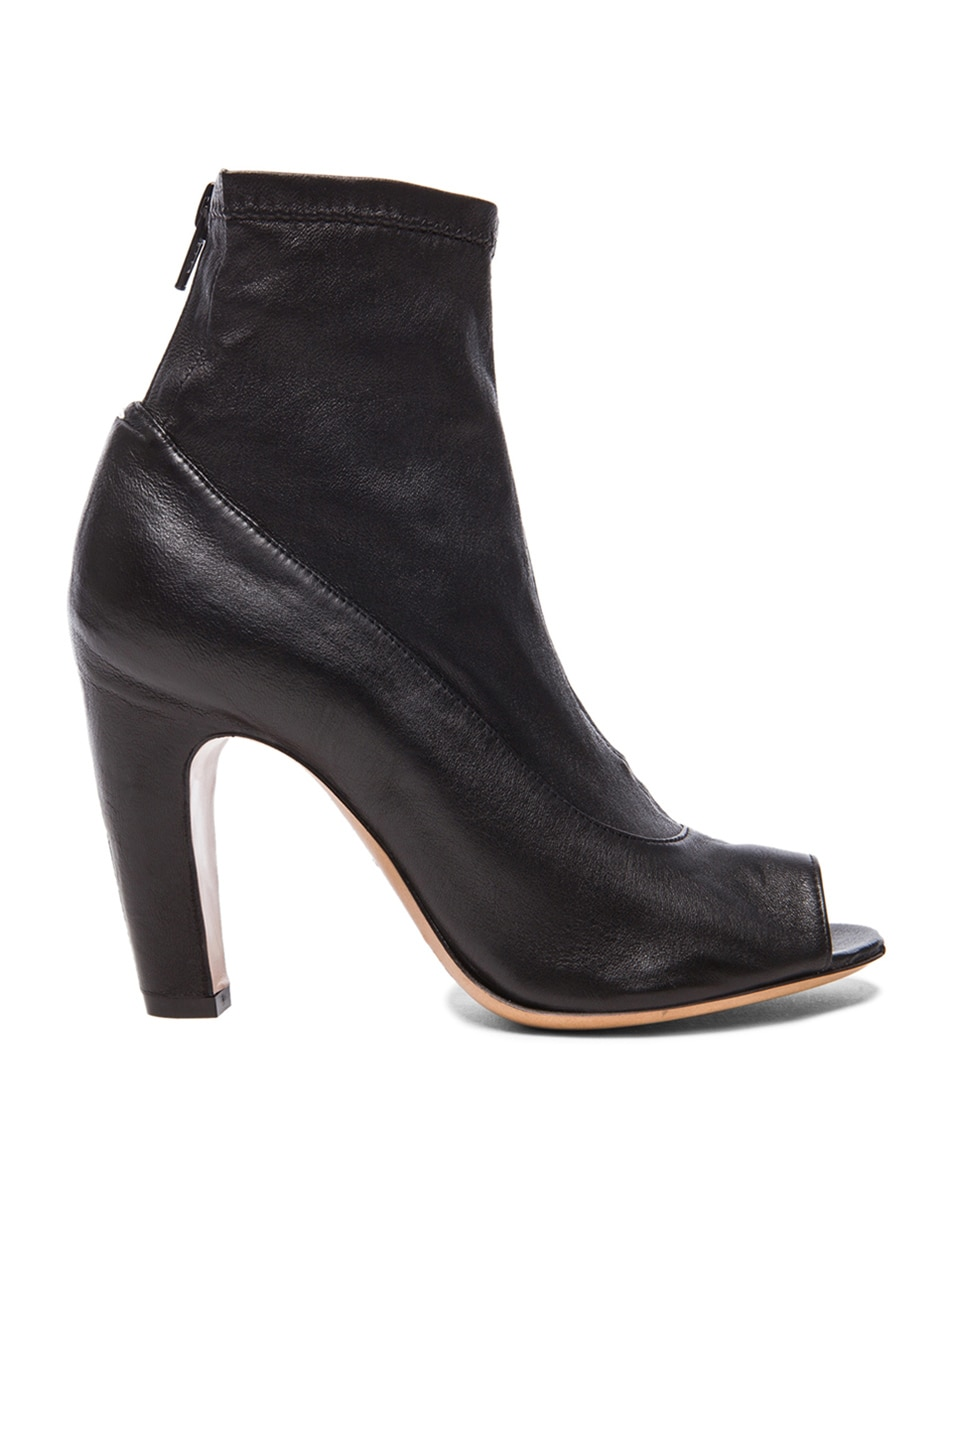 Image 1 of Maison Margiela Stretch Leather Open Toe Booties in Black